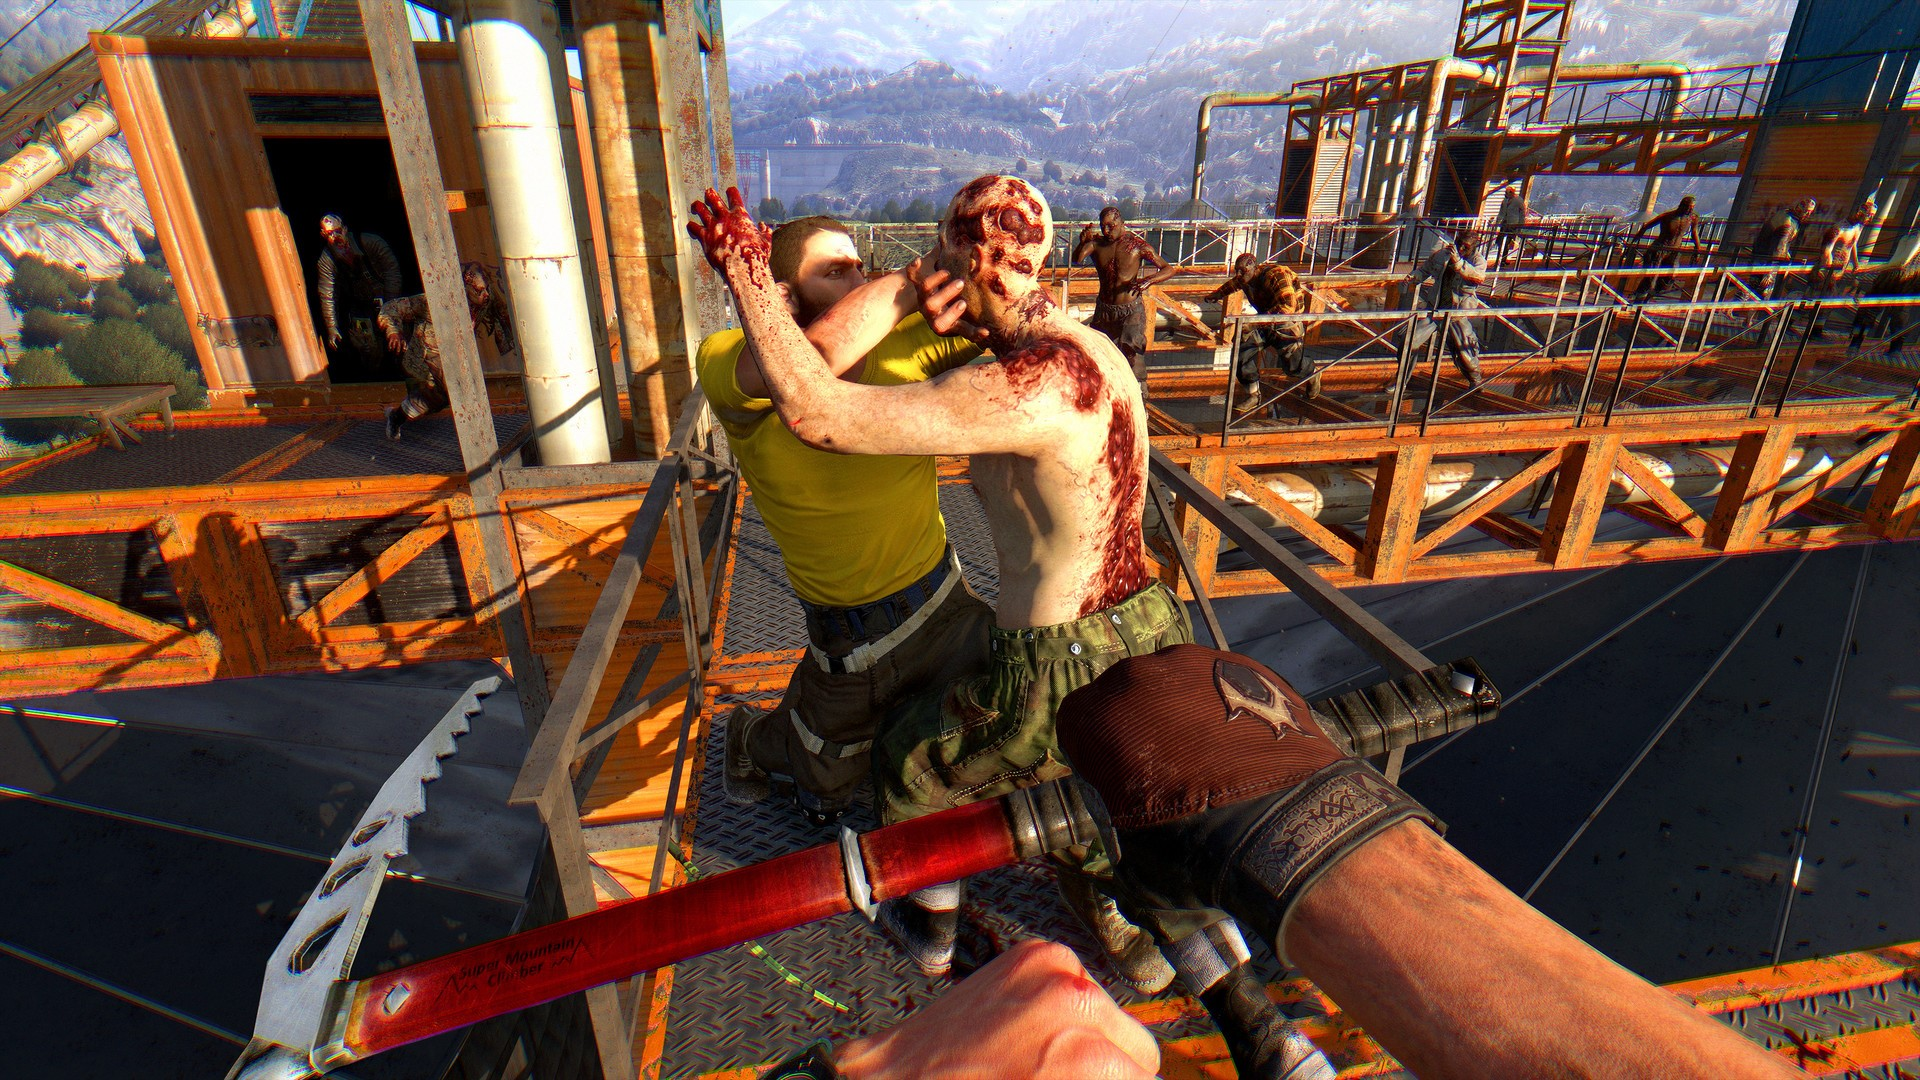 DYING LIGHT ENHANCED EDITION LICENSE KEY FOR STEAM